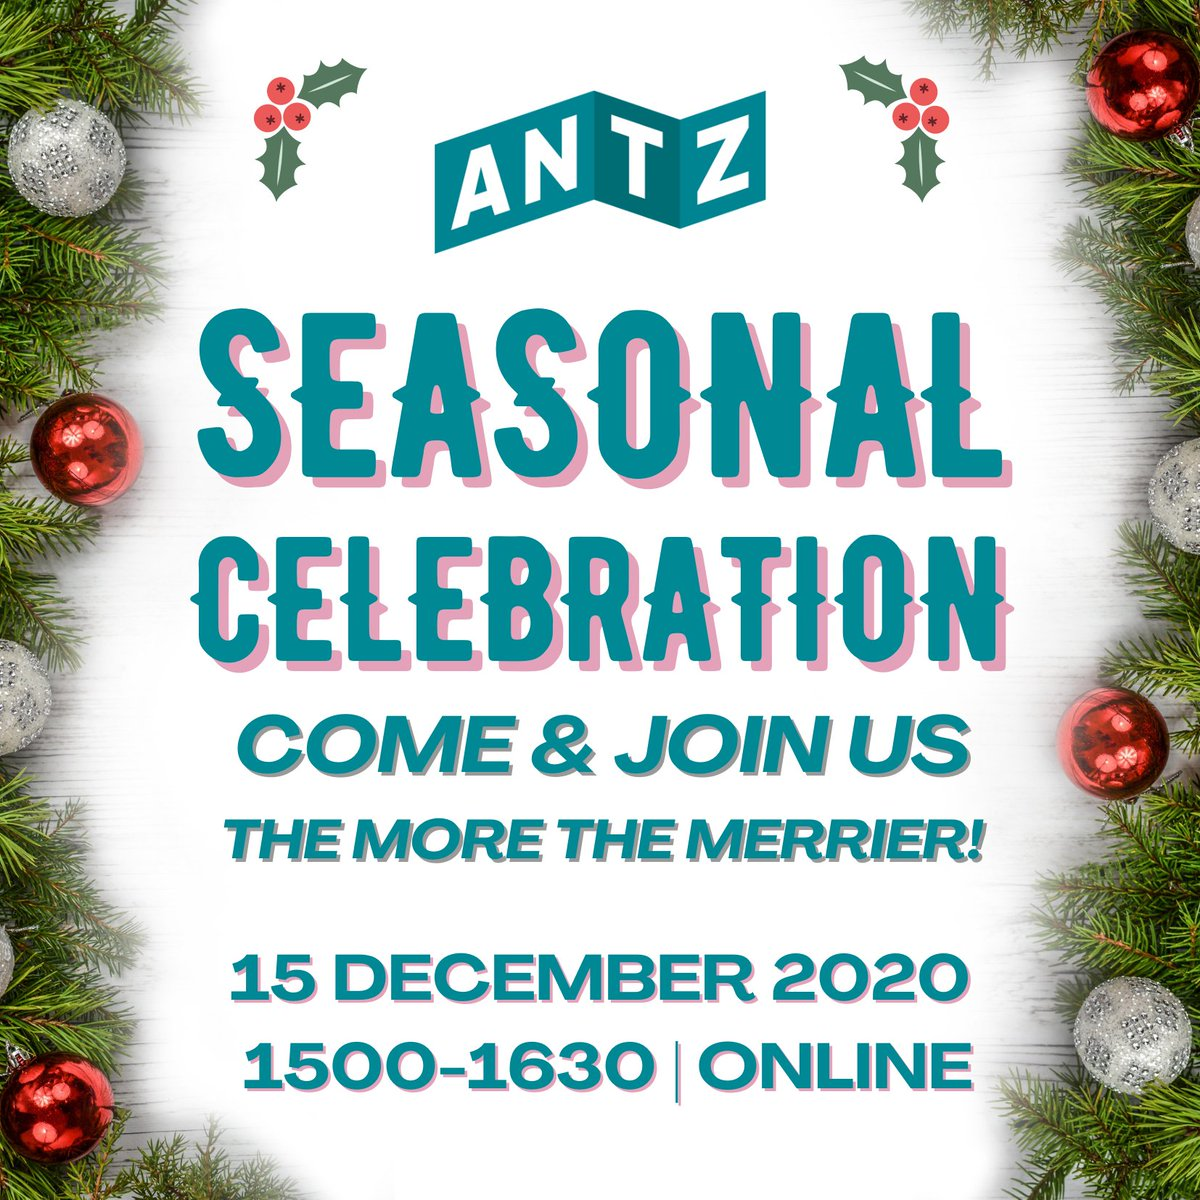 We would love you to join us for our Seasonal Celebration online.  Tuesday, 15 December 2020 1500-1630.  The more the merrier! 🥳🎉🎊🎇  #BookNow at   #fun #online #networking #festive #partytime